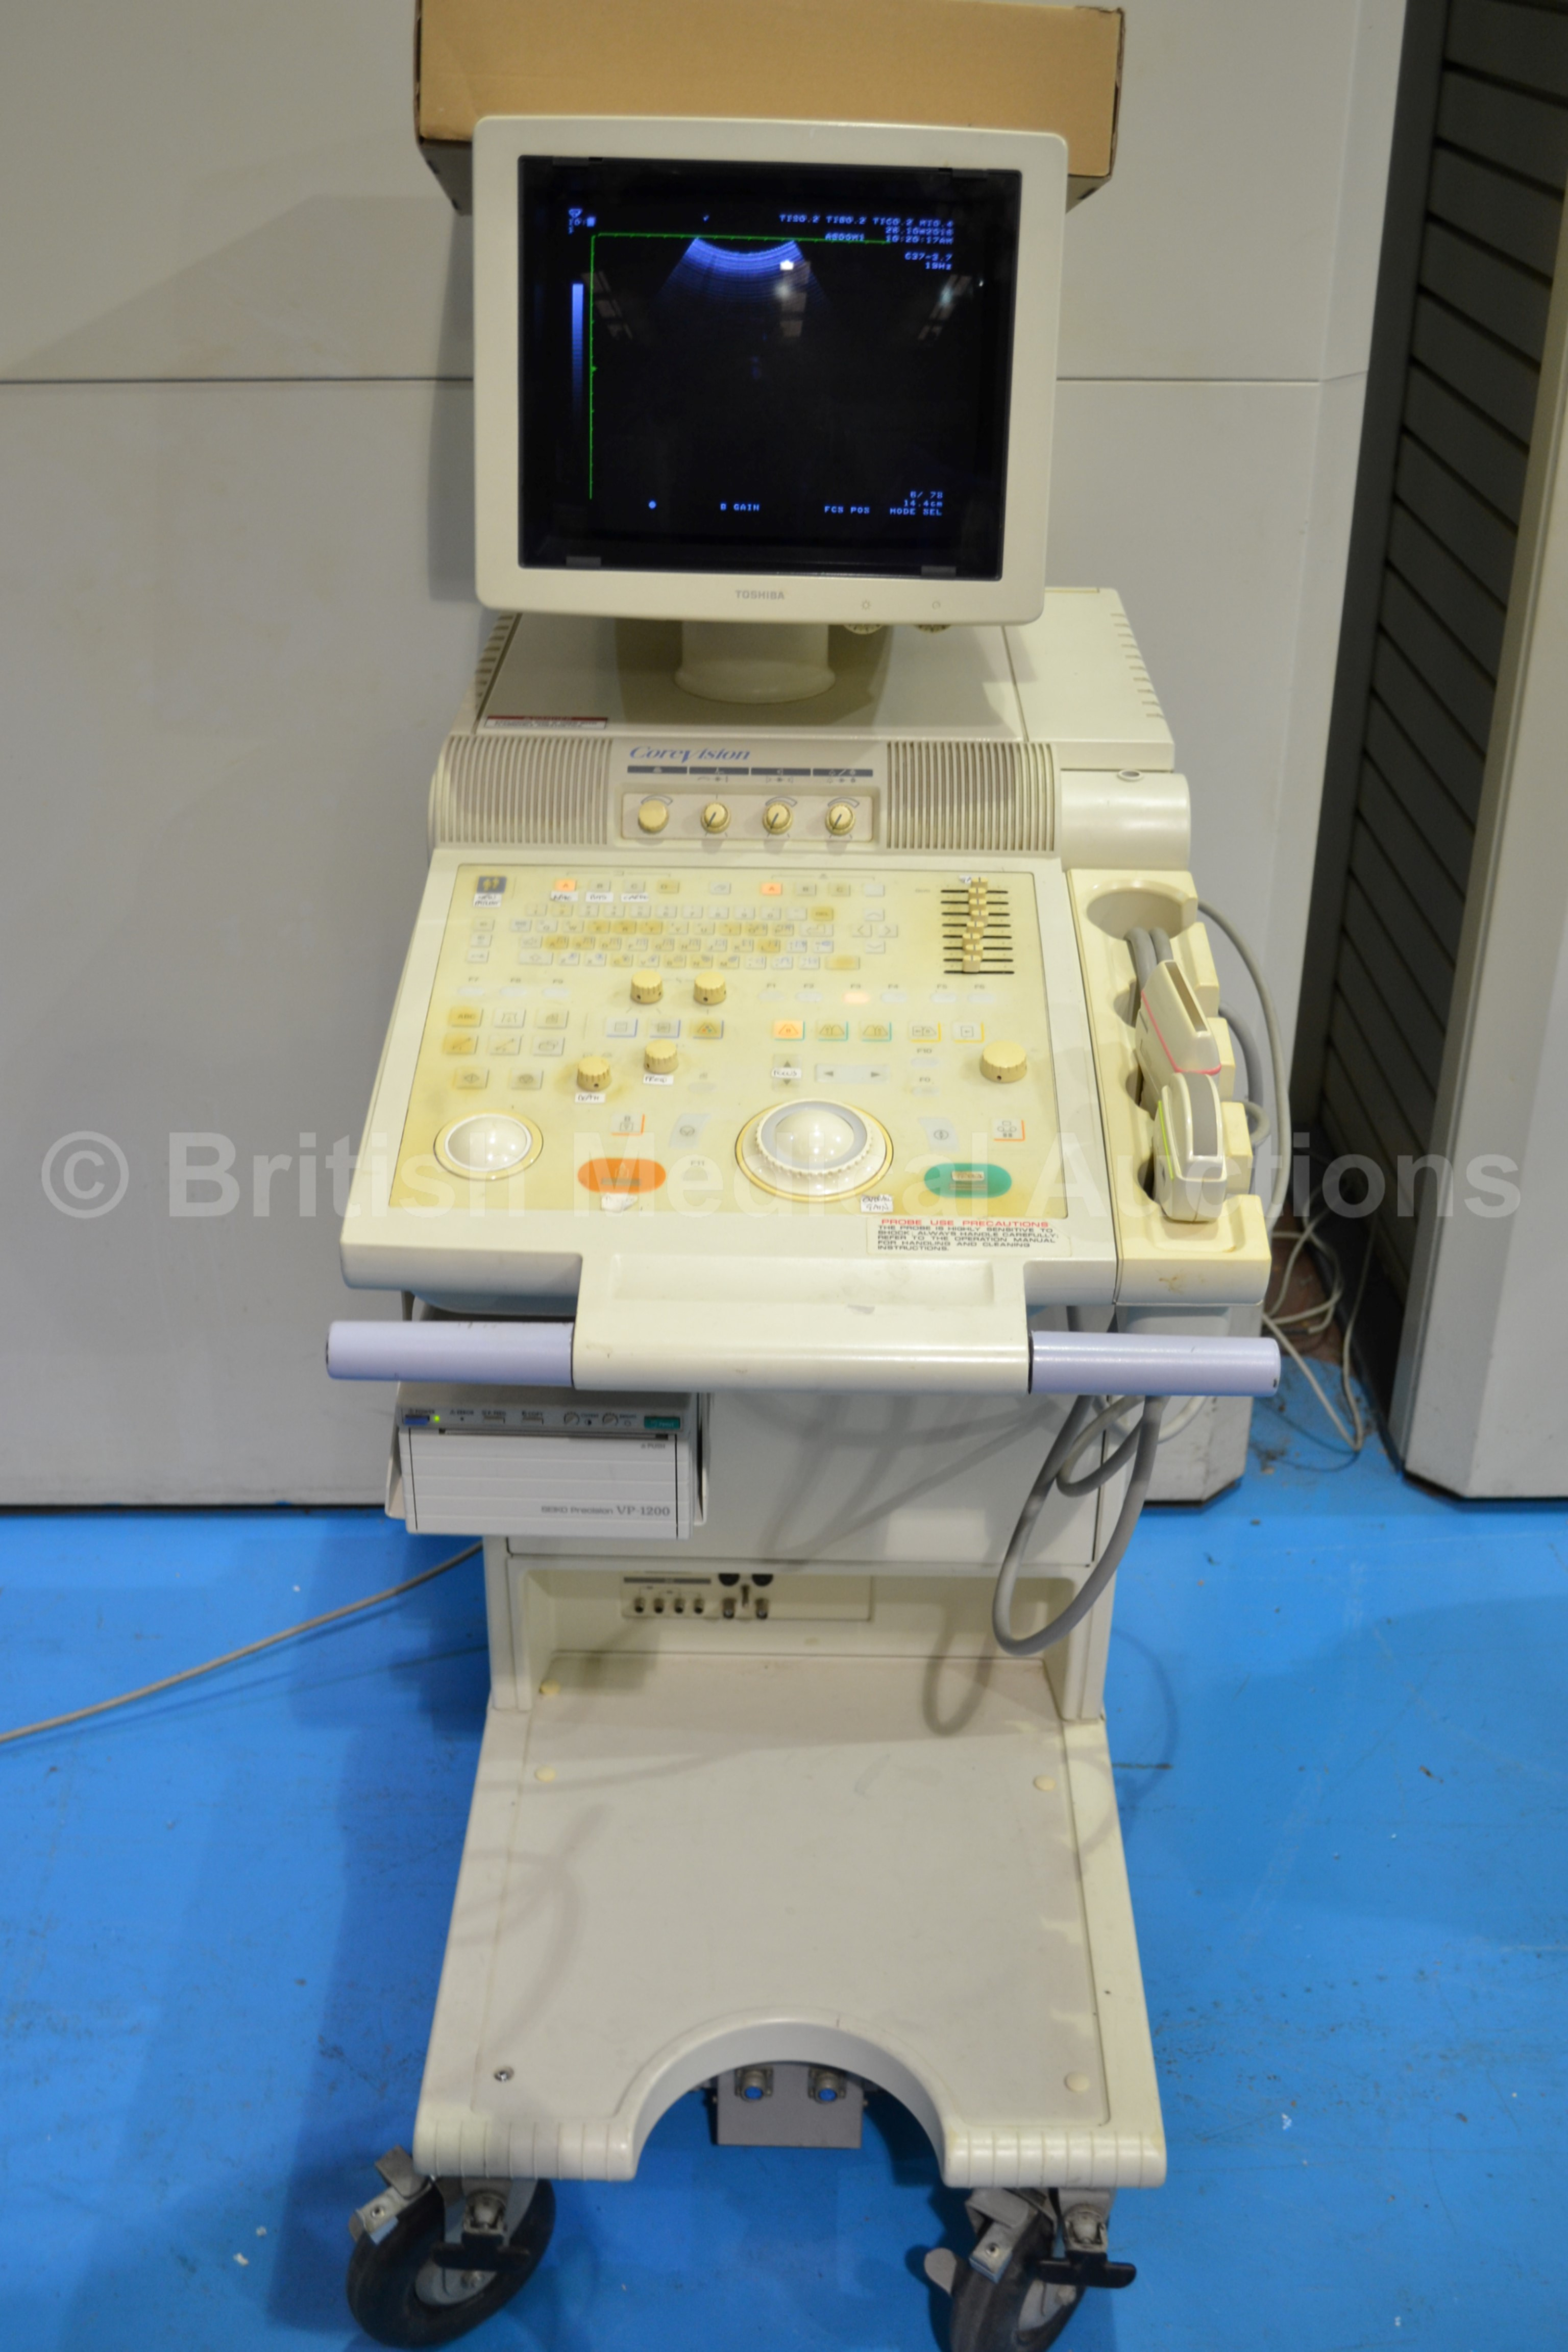 toshiba corevision ssa 350a ultrasound scanner with two transducers rh bidspotter co uk